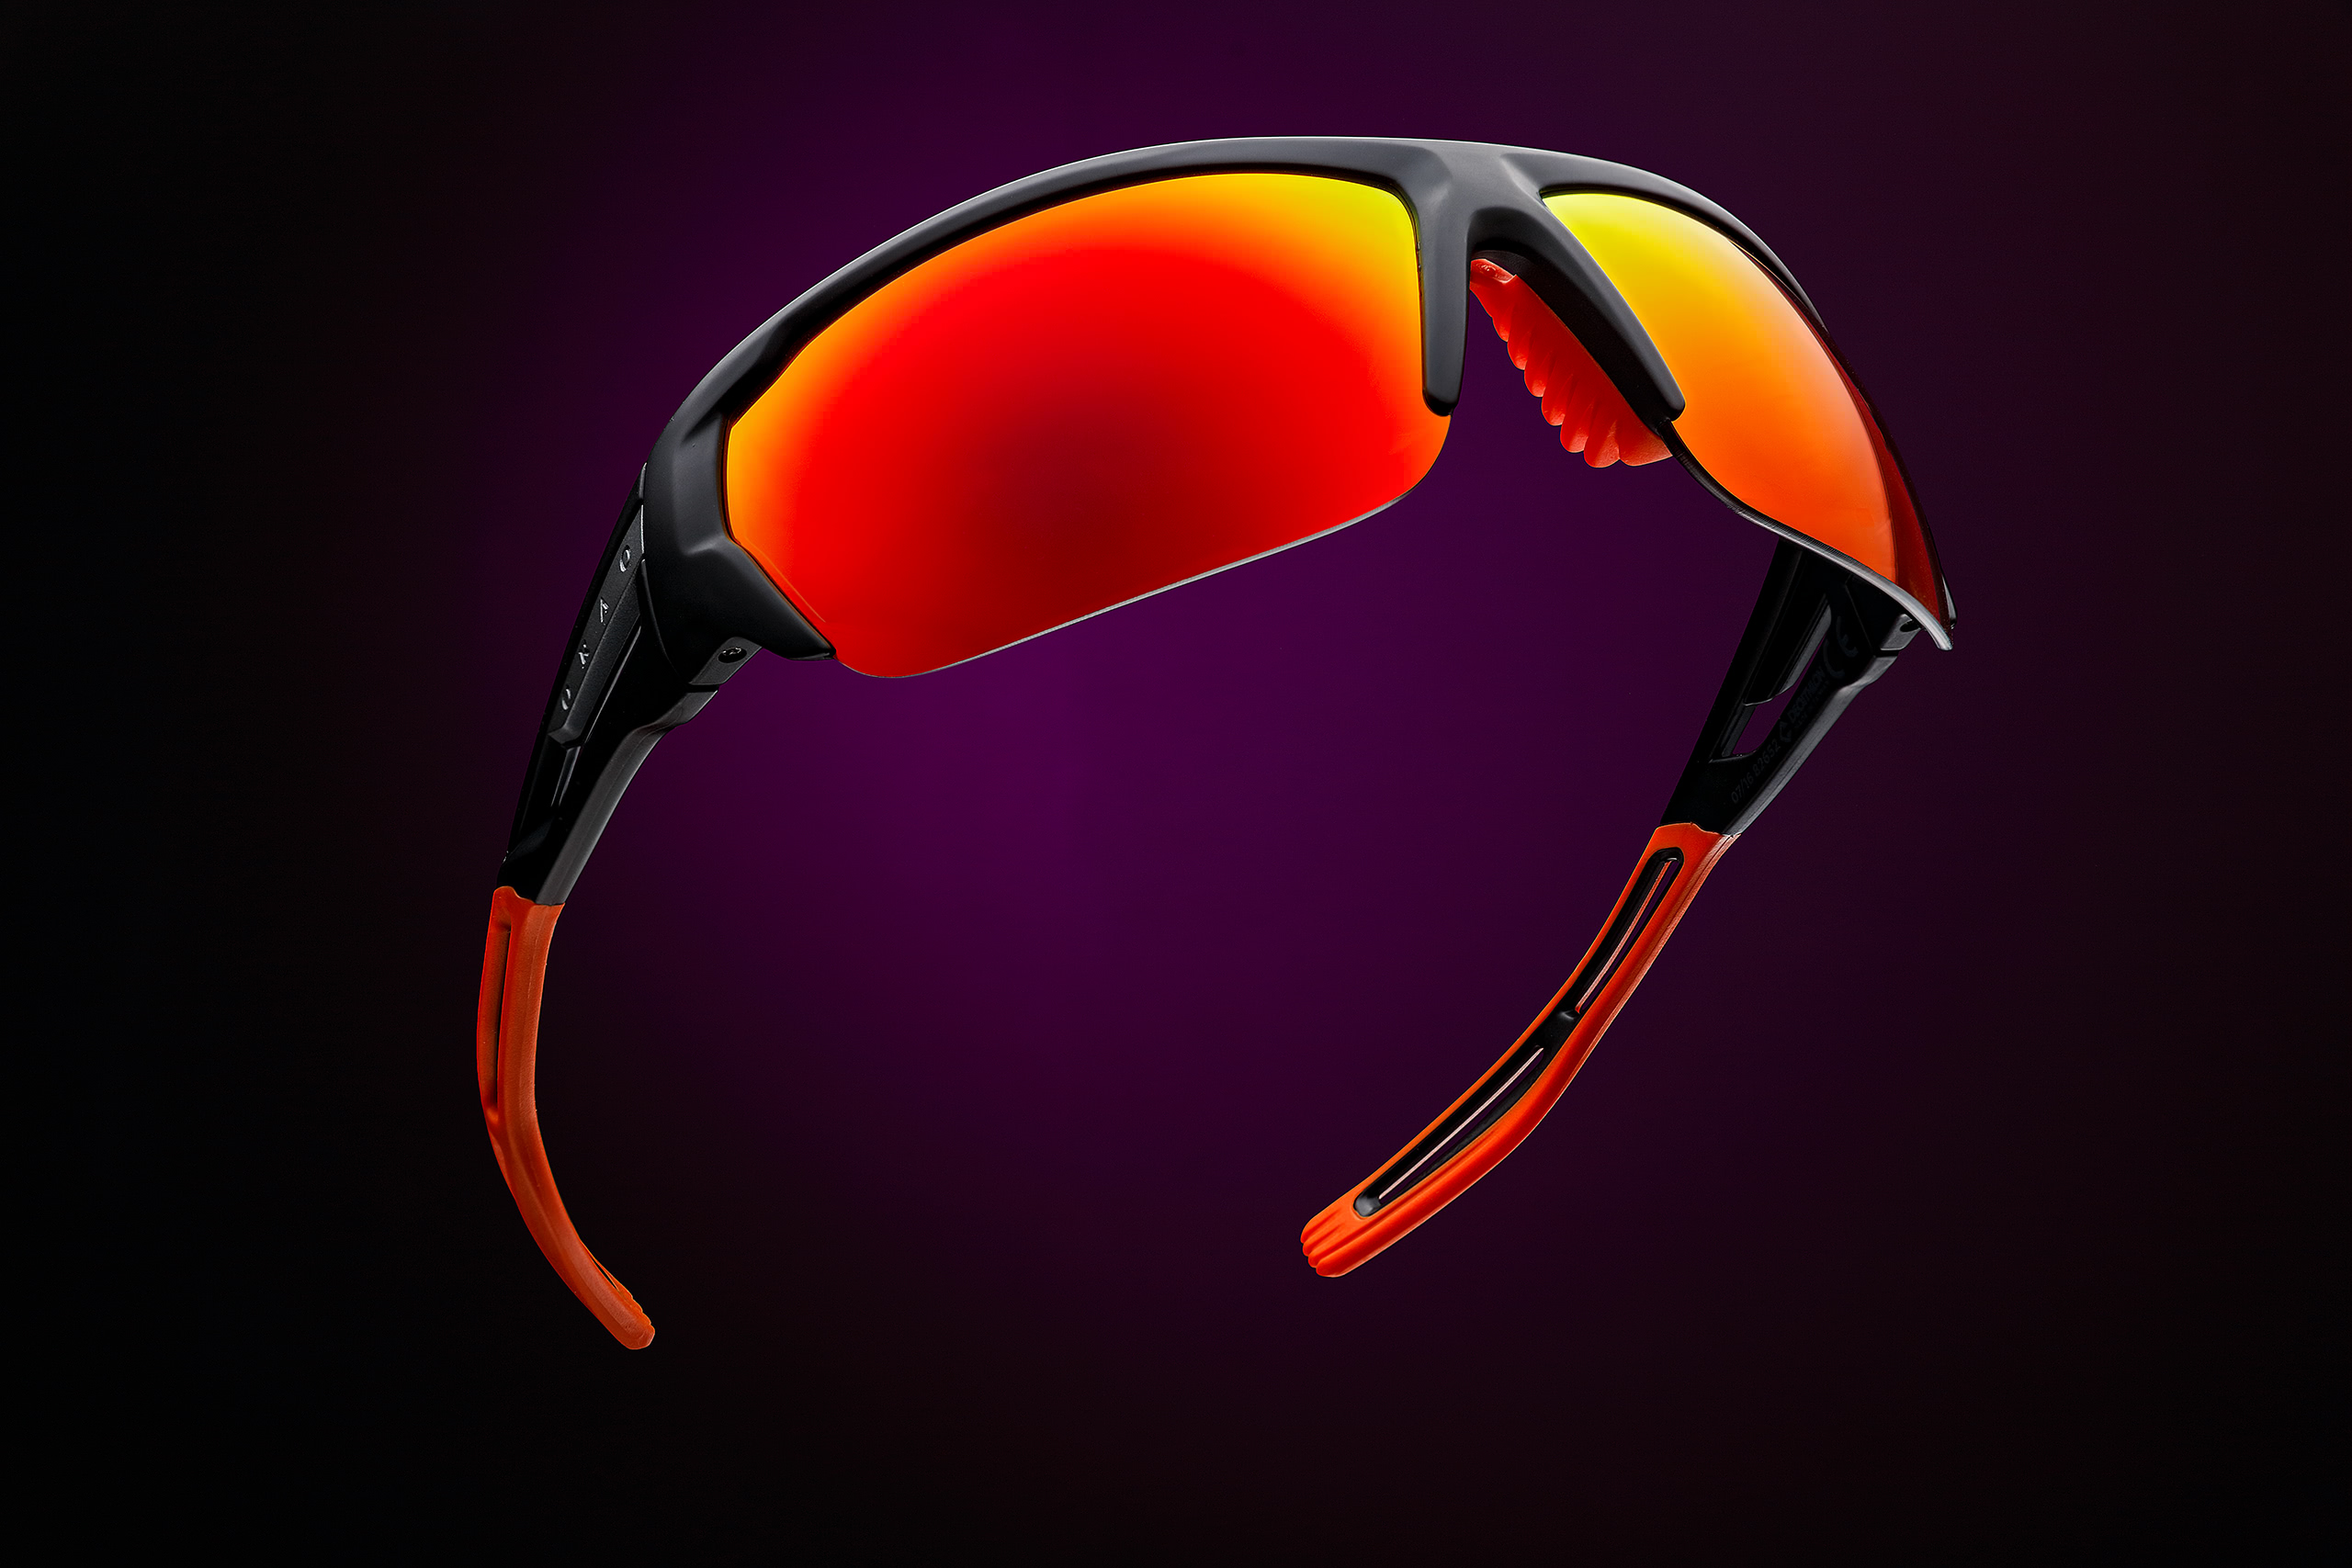 commercial advertising photography for sunglasses